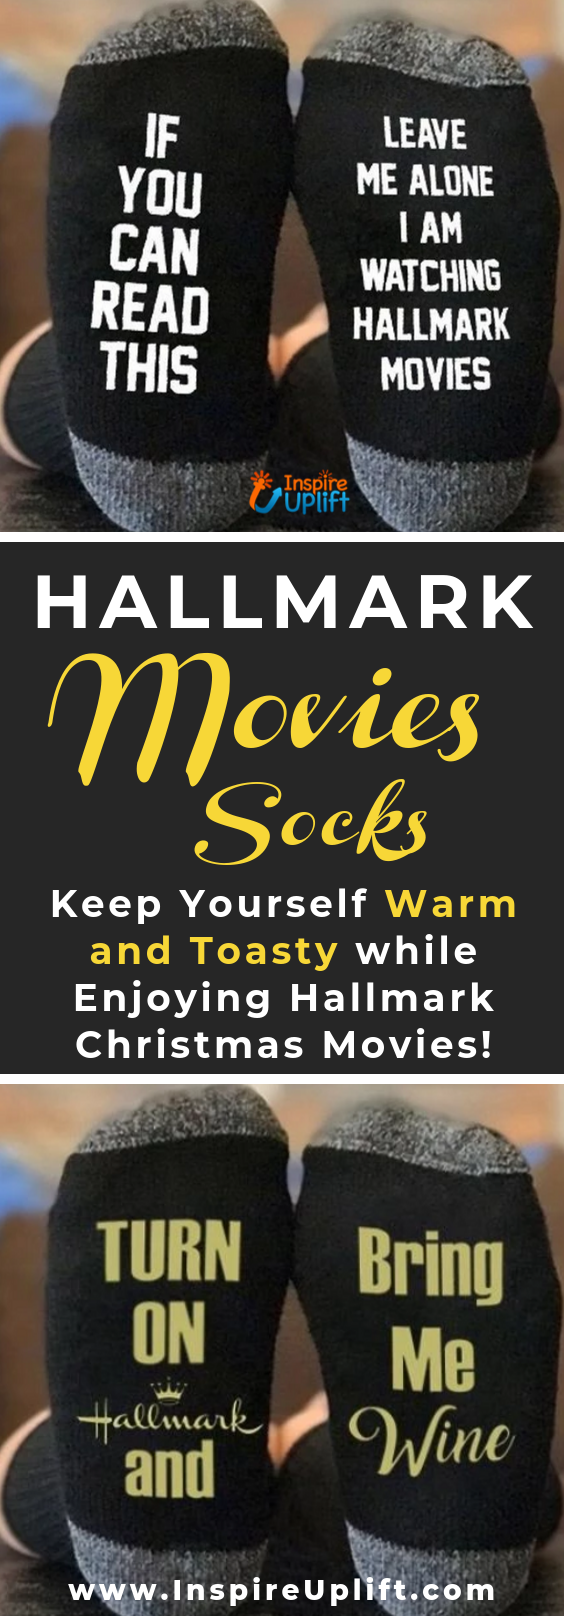 Hallmark Movies Socks 😍